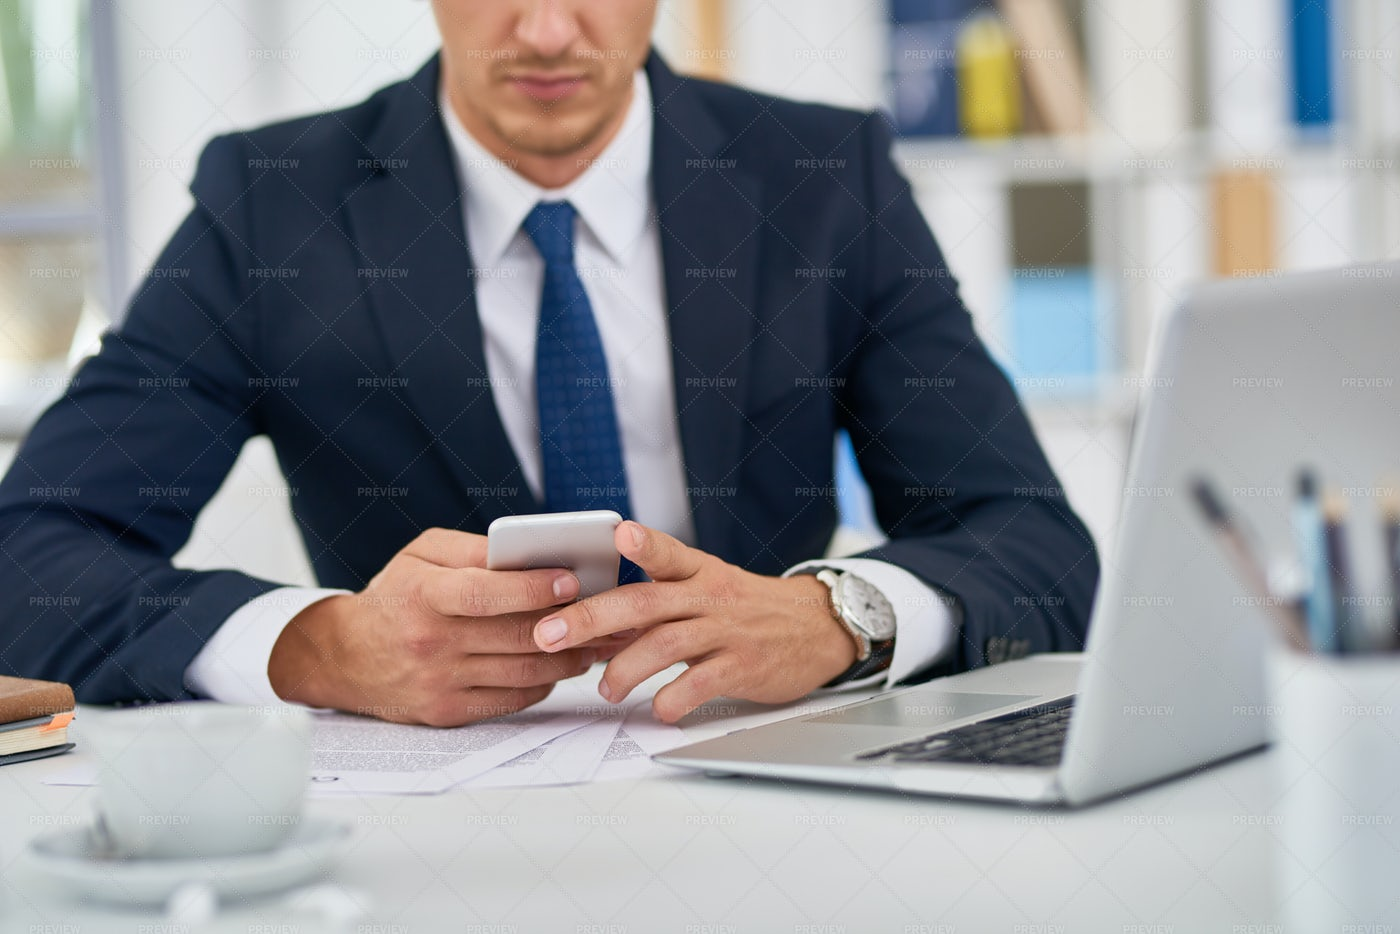 Business Person With Smartphone: Stock Photos